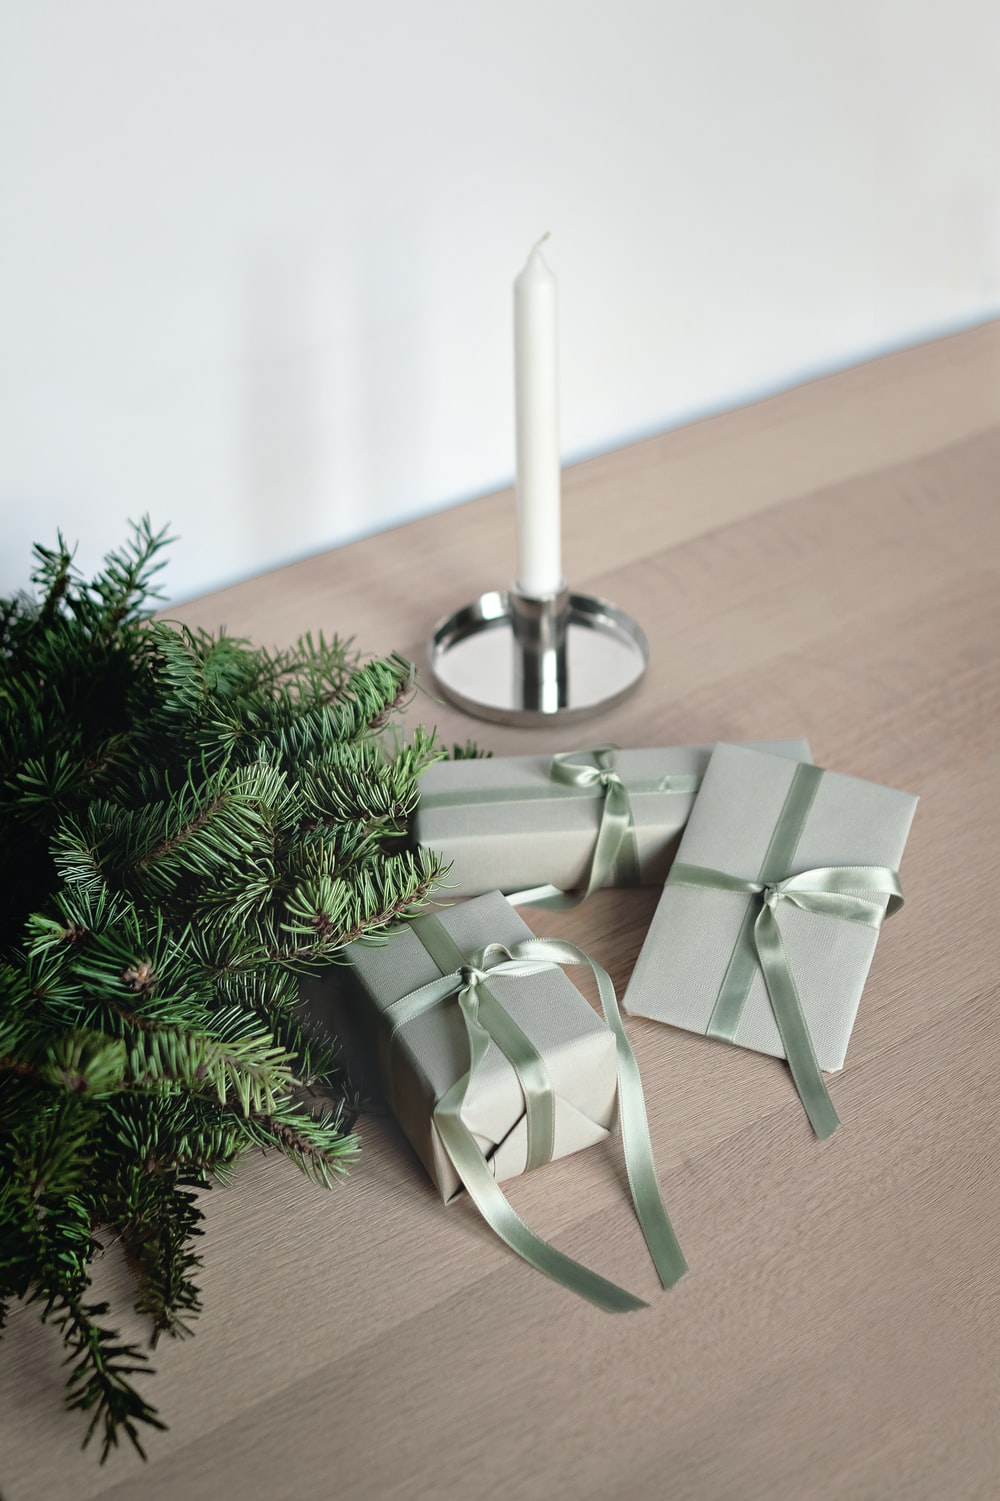 three gift boxes with ribbons on table